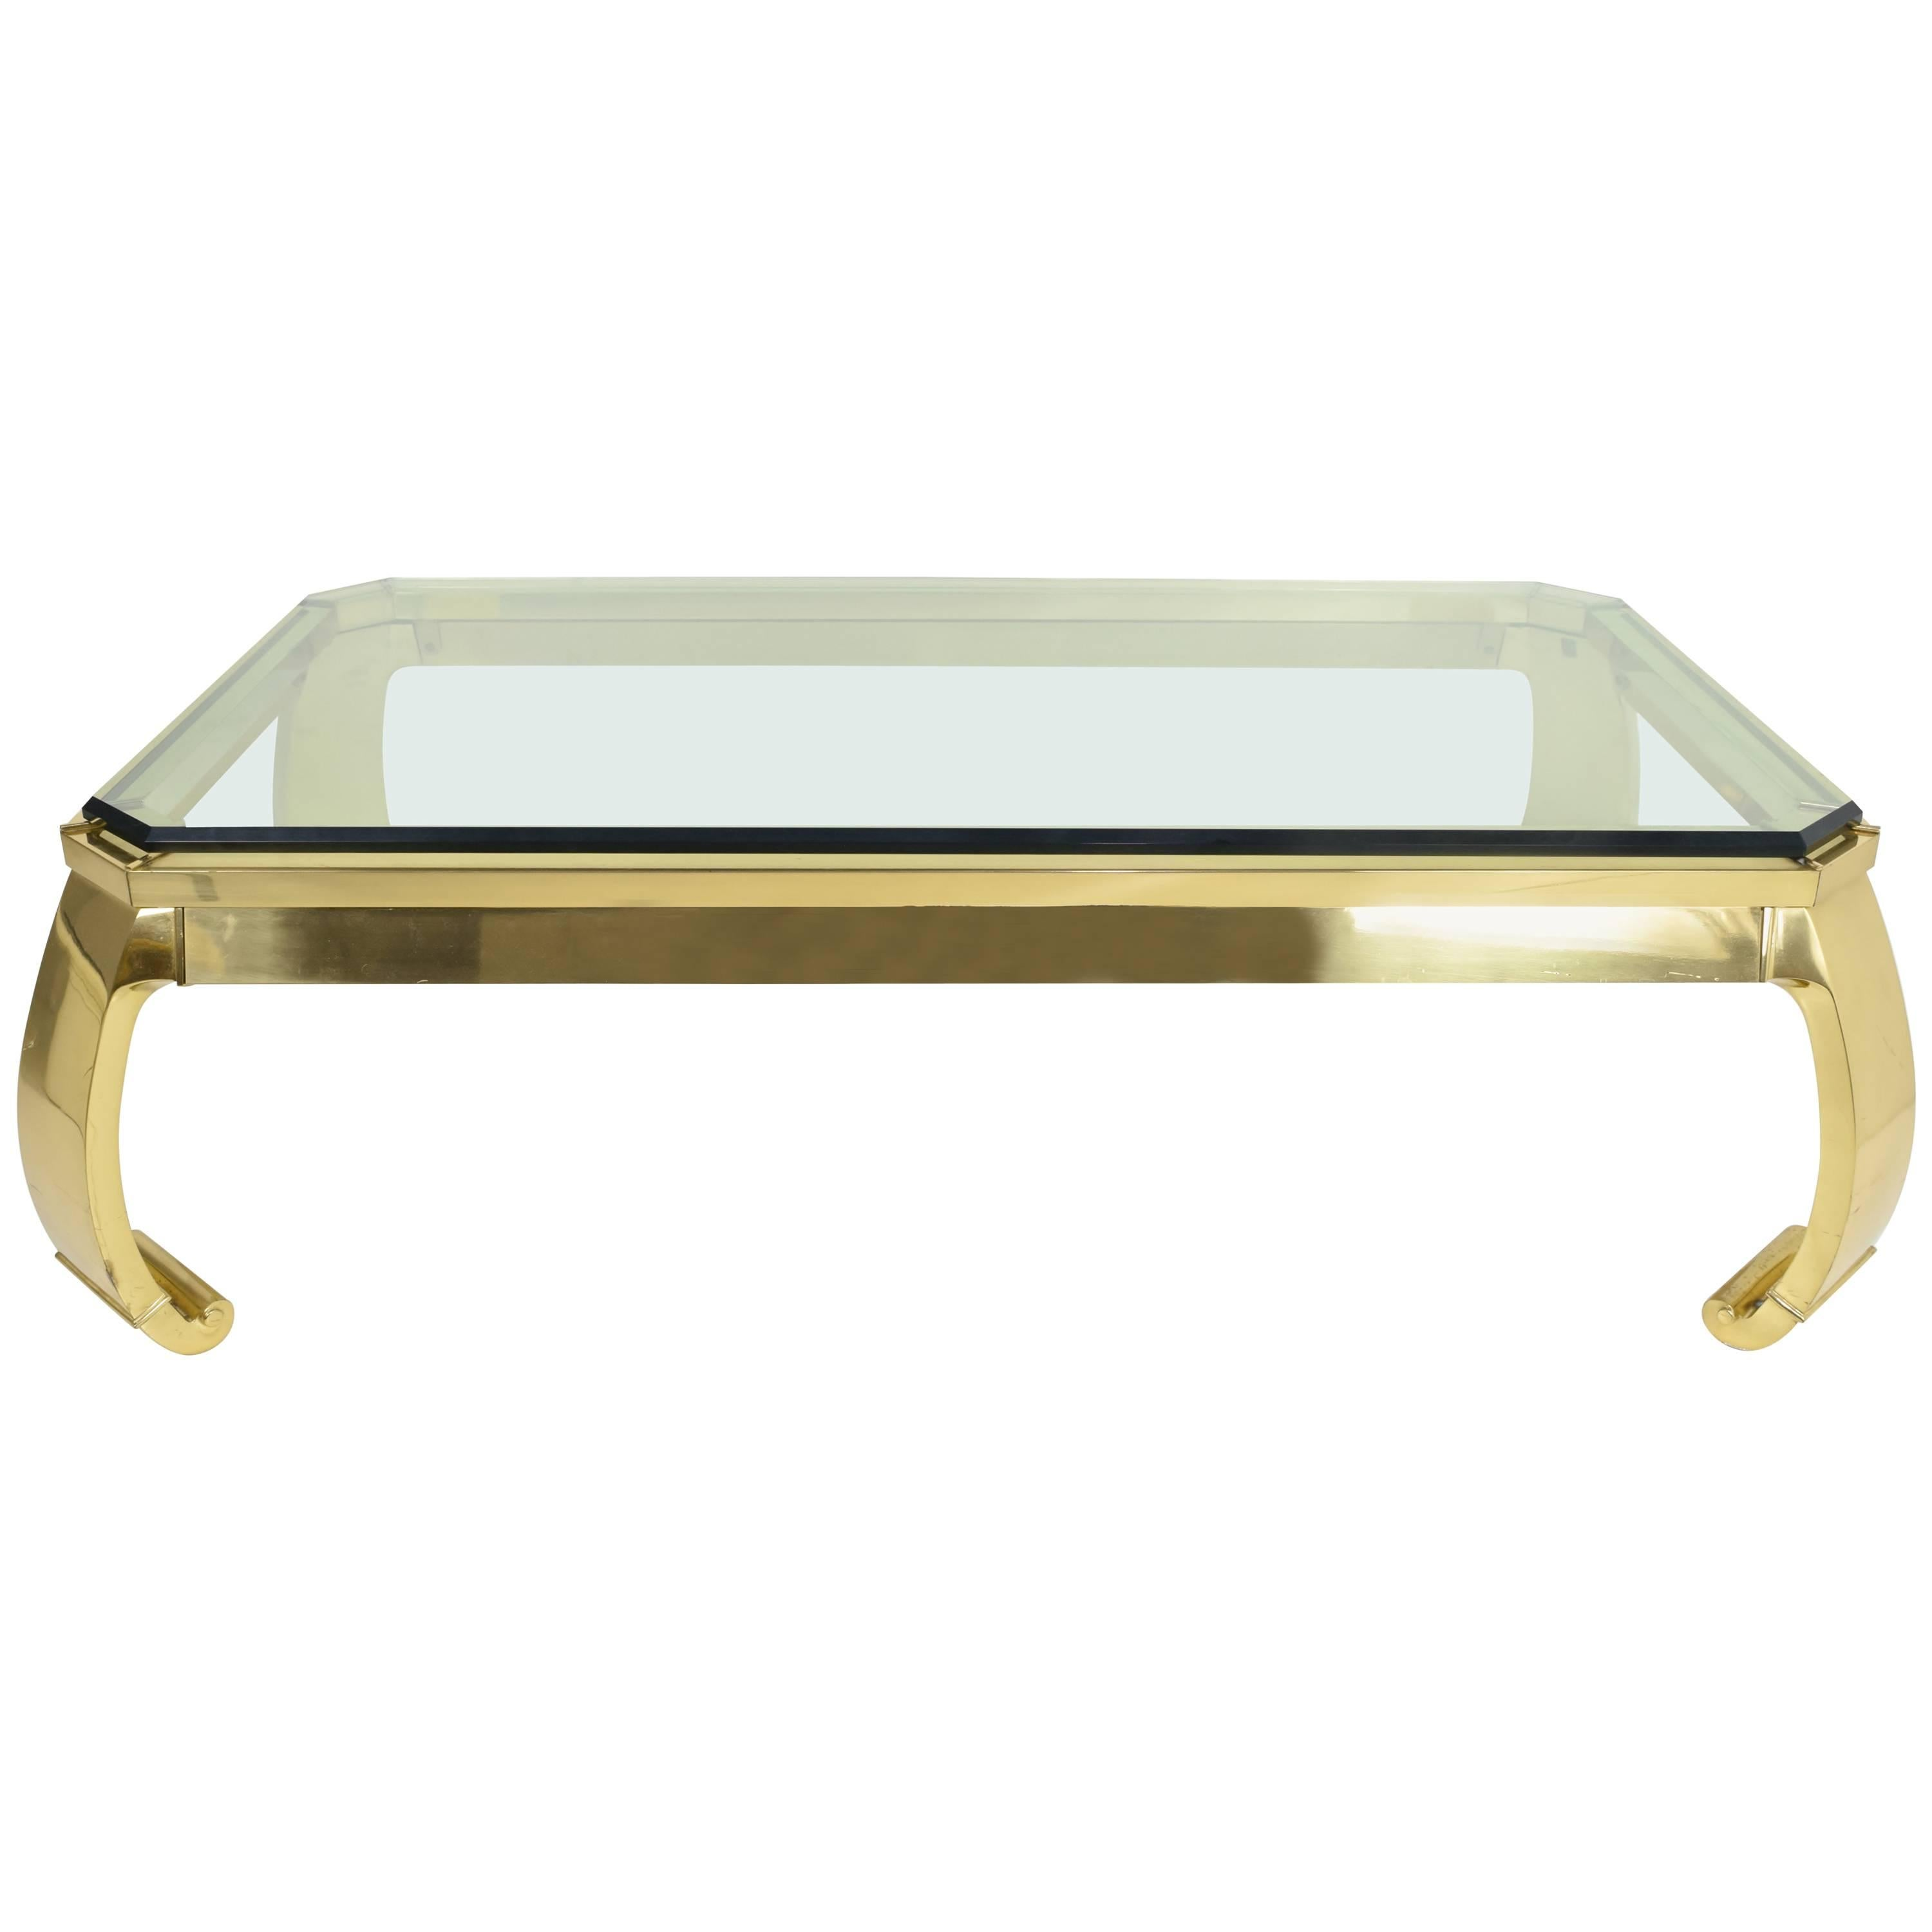 Karl Springer Style Brass Coffee Table At 1stdibs